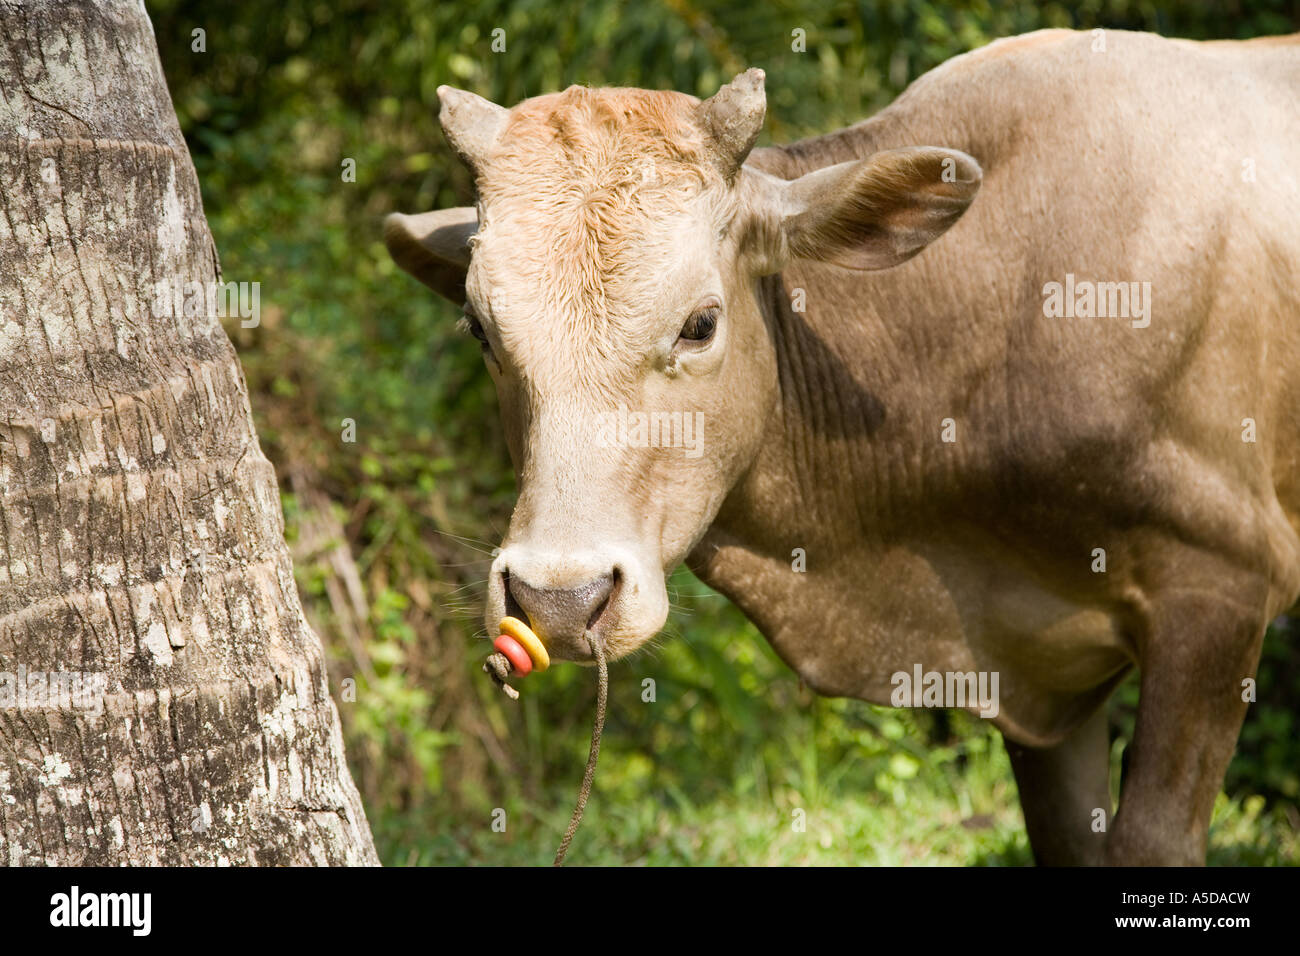 Cow Tethered, by the nose, farm, travel, cattle, agriculture  An Asian bovine farm animal secured for grazing in - Stock Image